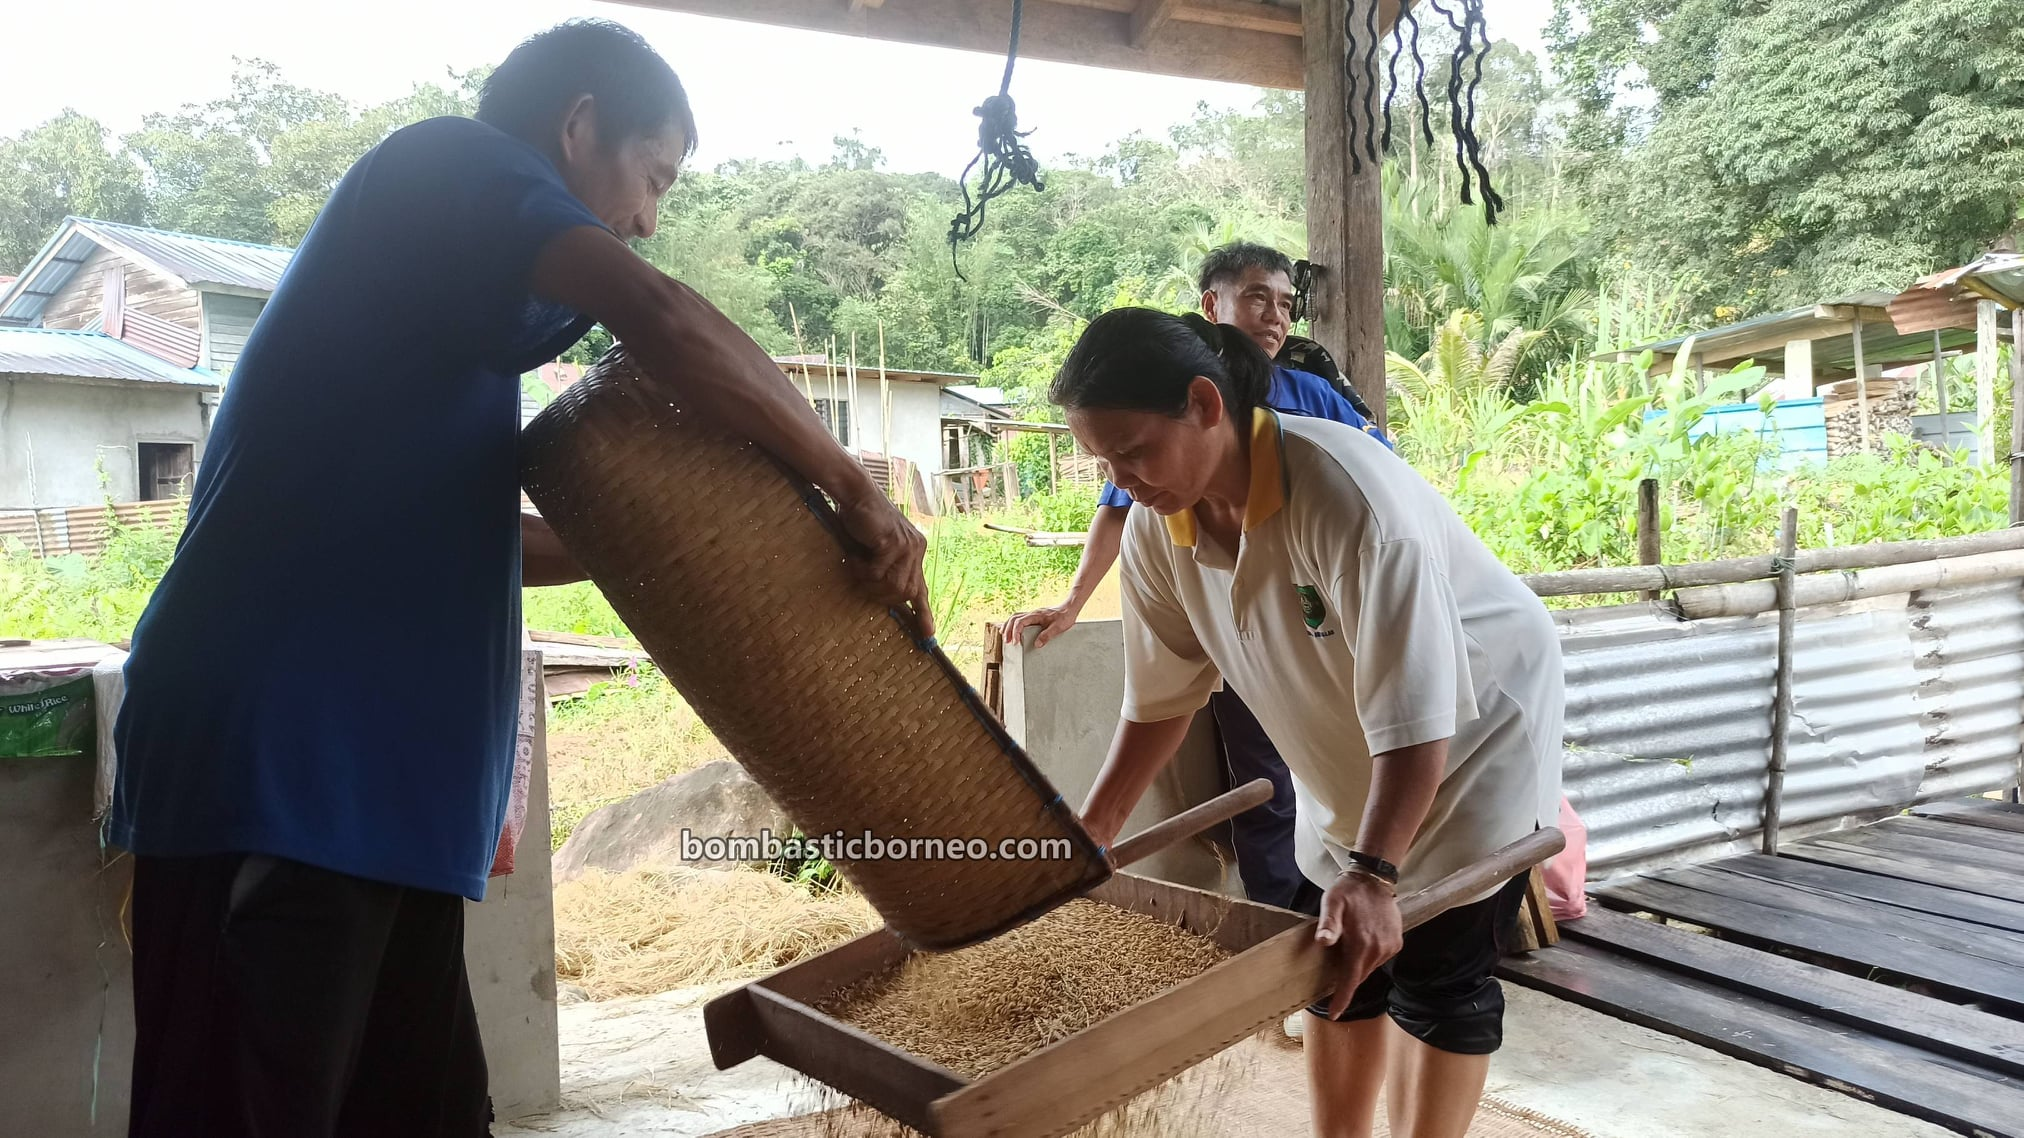 Kampung Gahat, Village, paddy farming, authentic, native, culture, Malaysia, Tourism, tourist attraction, travel guide, travel local, Trans Borneo, 探索婆罗洲游踪, 马来西亚砂拉越, 西连比达友村